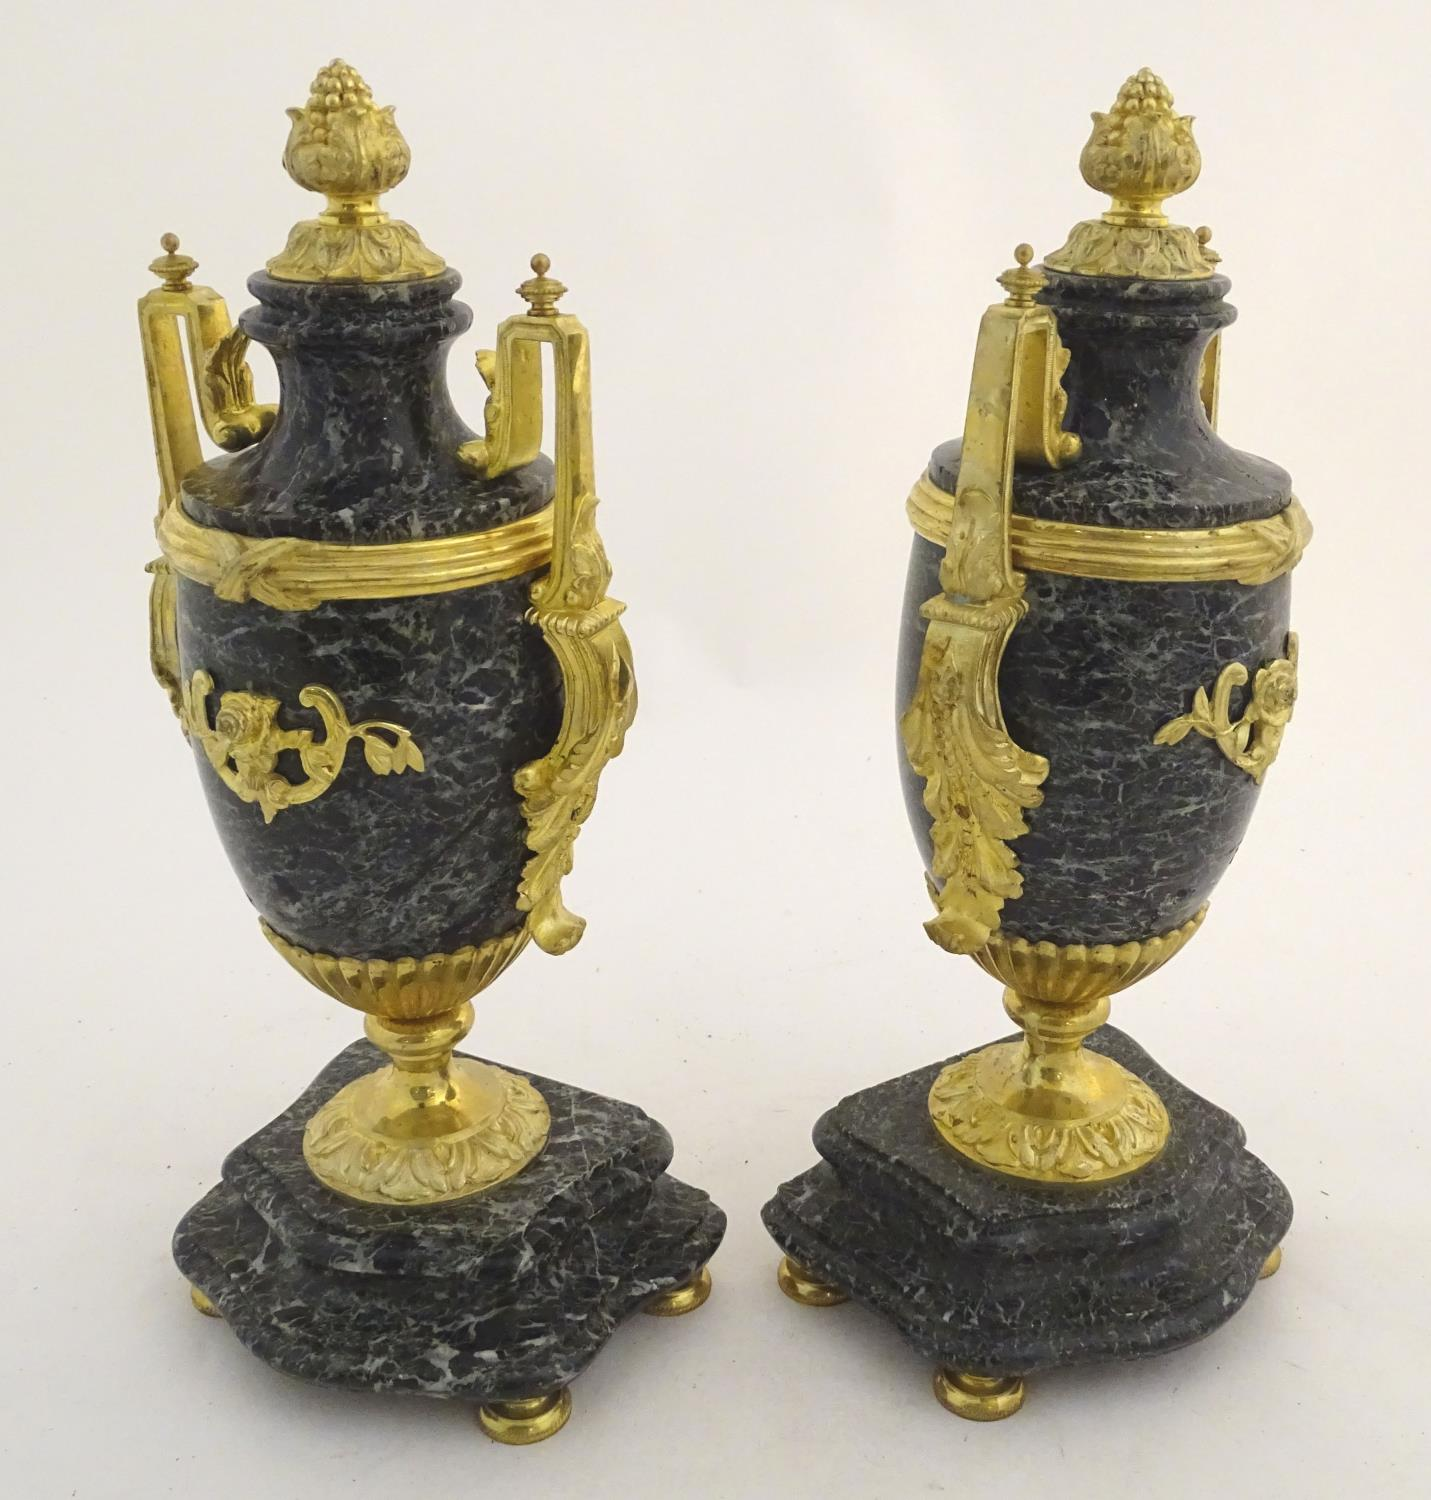 Lot 887 - A pair of late 19thC grey marble garnitures of urn form with gilt metal handles and mounts.